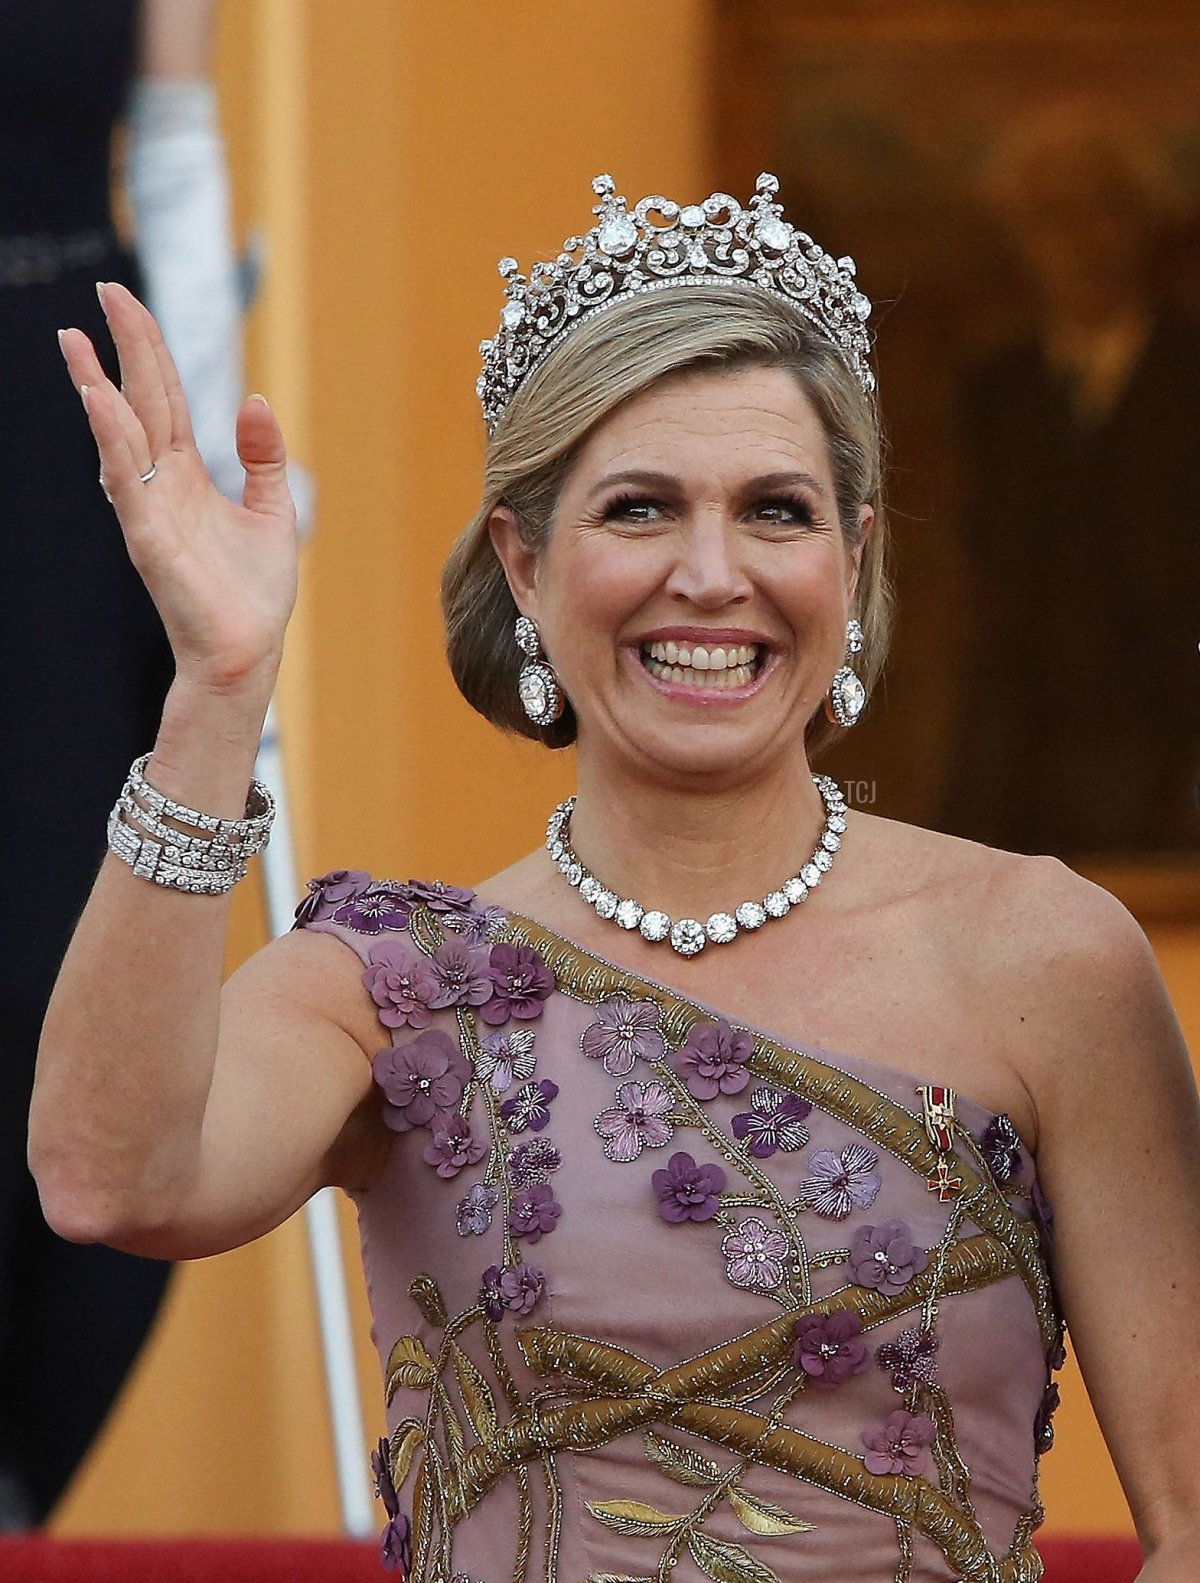 King Willem-Alexander and Queen Maxima of the Netherlands wave as they arrive for a state dinner in their honour at the Bellevue presidential palace in Berlin on July 5, 2021